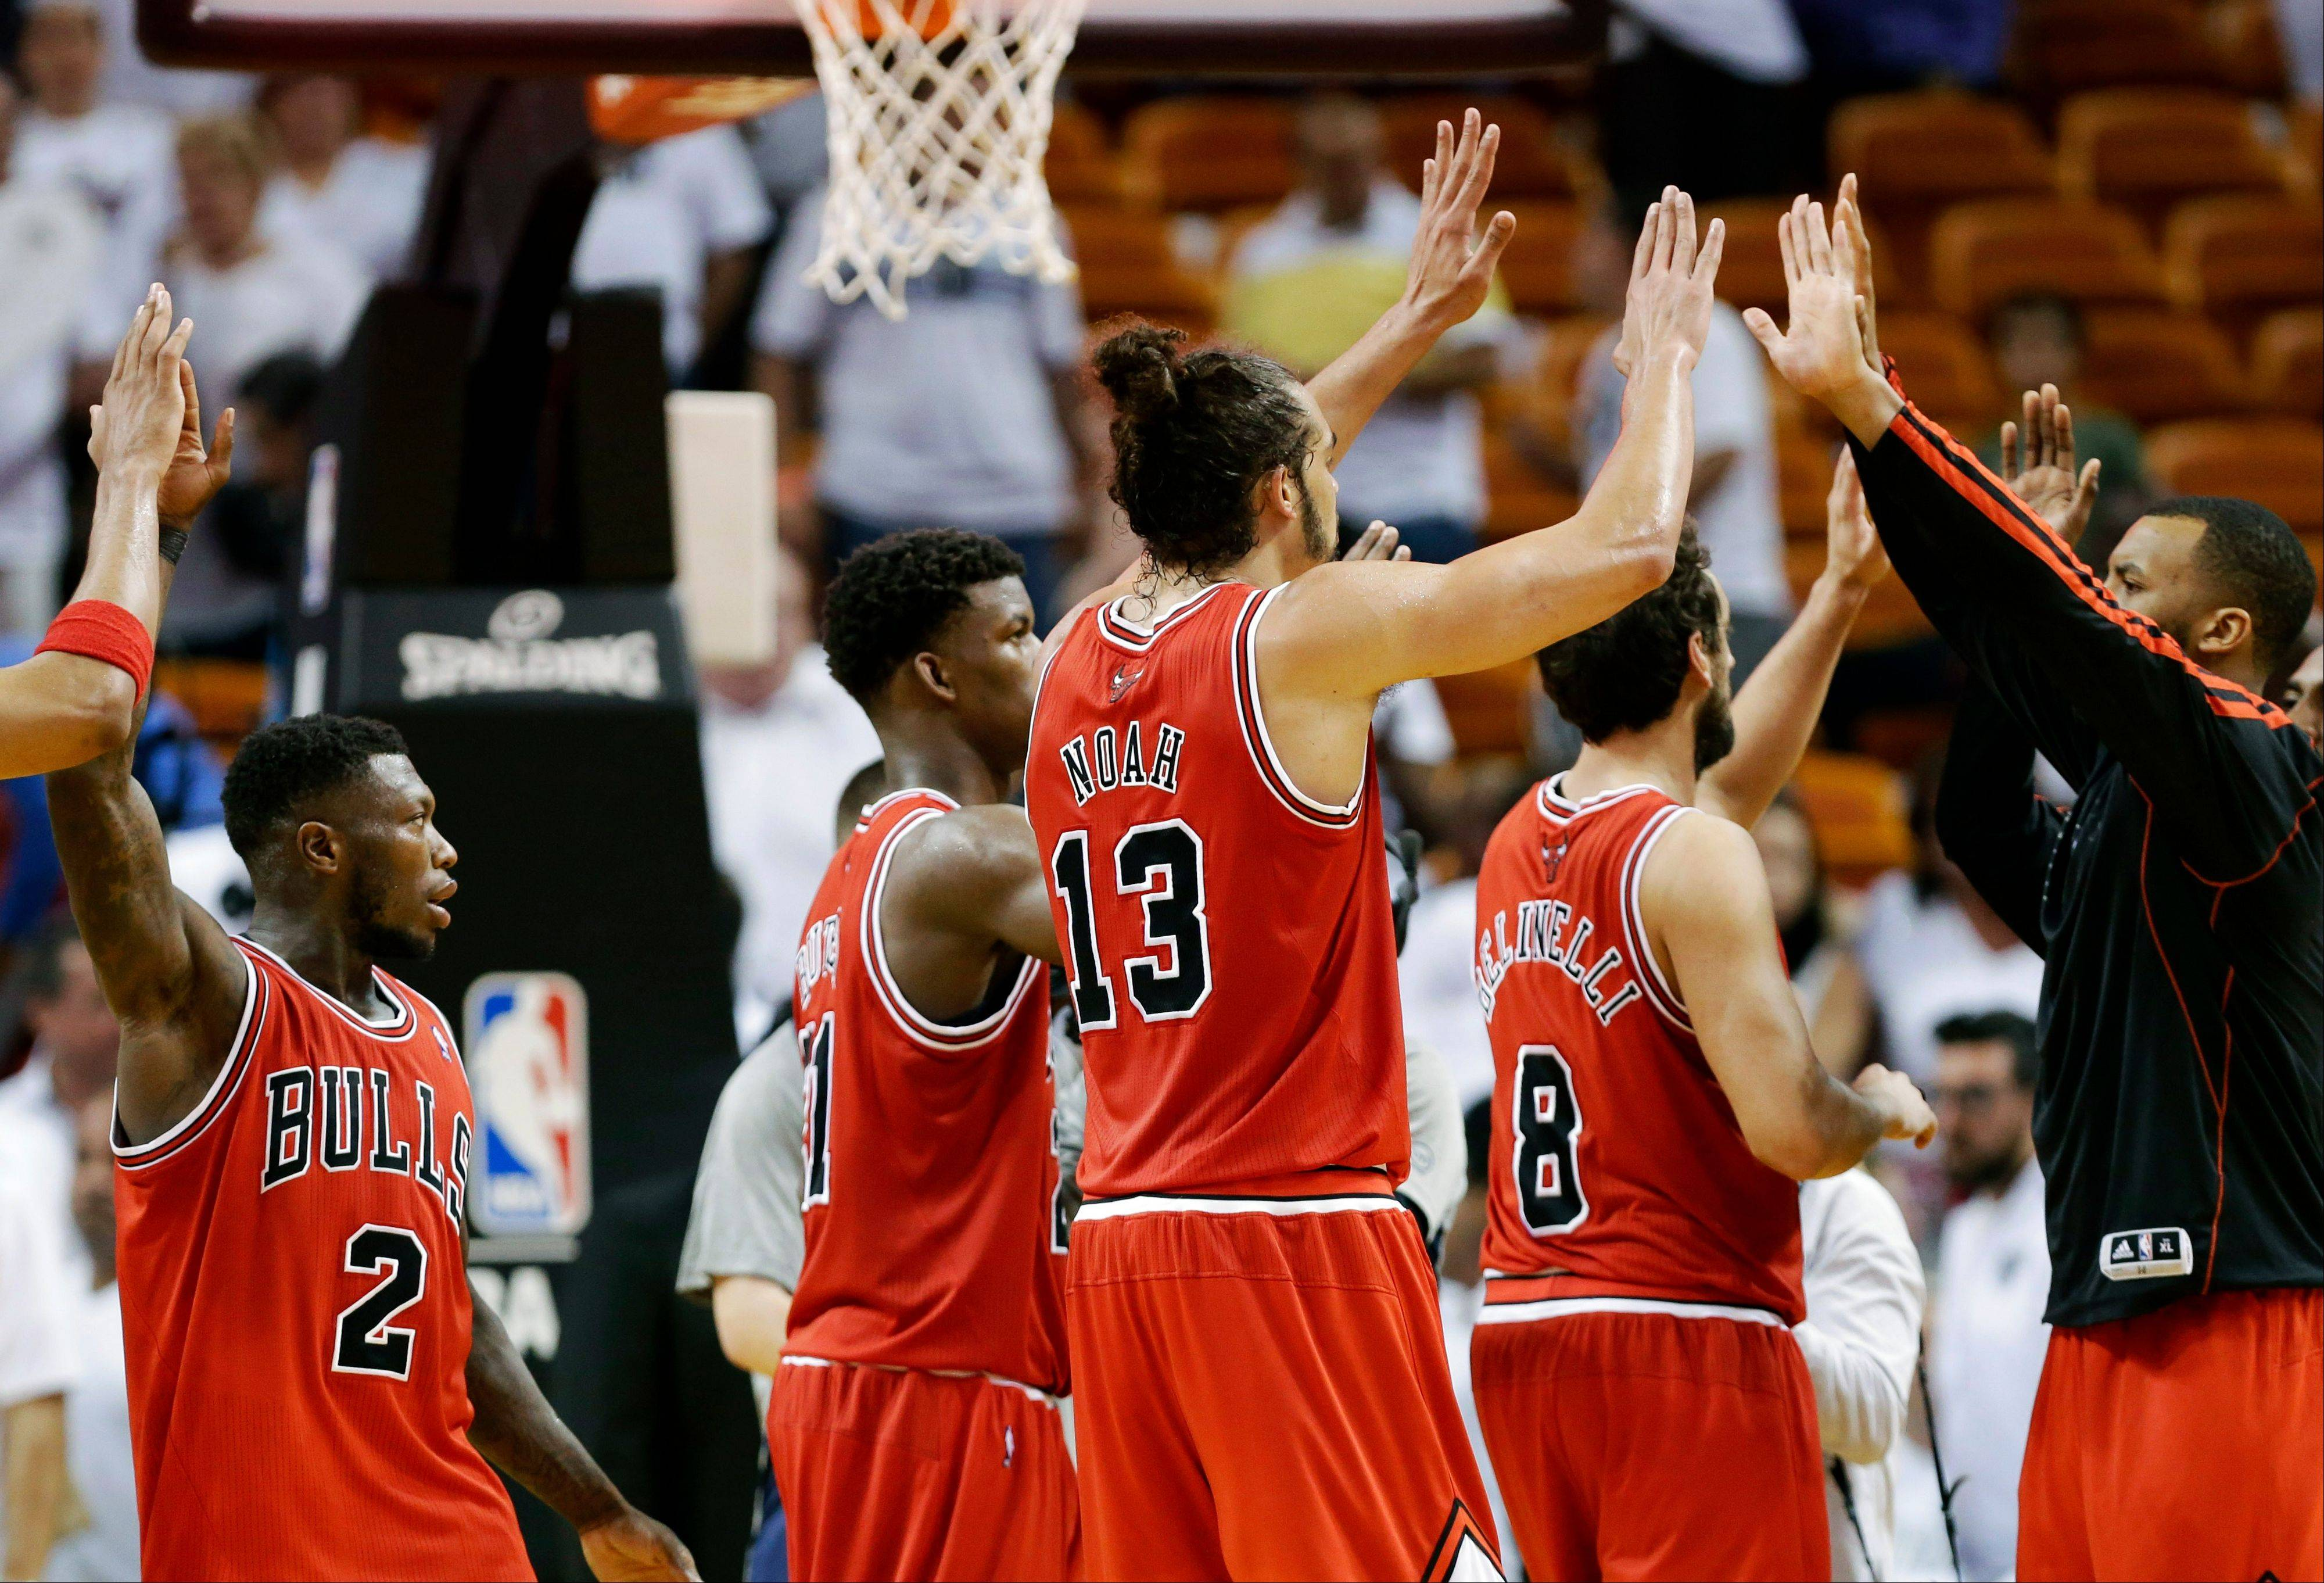 Nate Robinson and Joakim Noah celebrate with their Bulls teammates Monday after defeating the Miami Heat 93-86 in Game 1 of the Eastern Conference Semifinals.